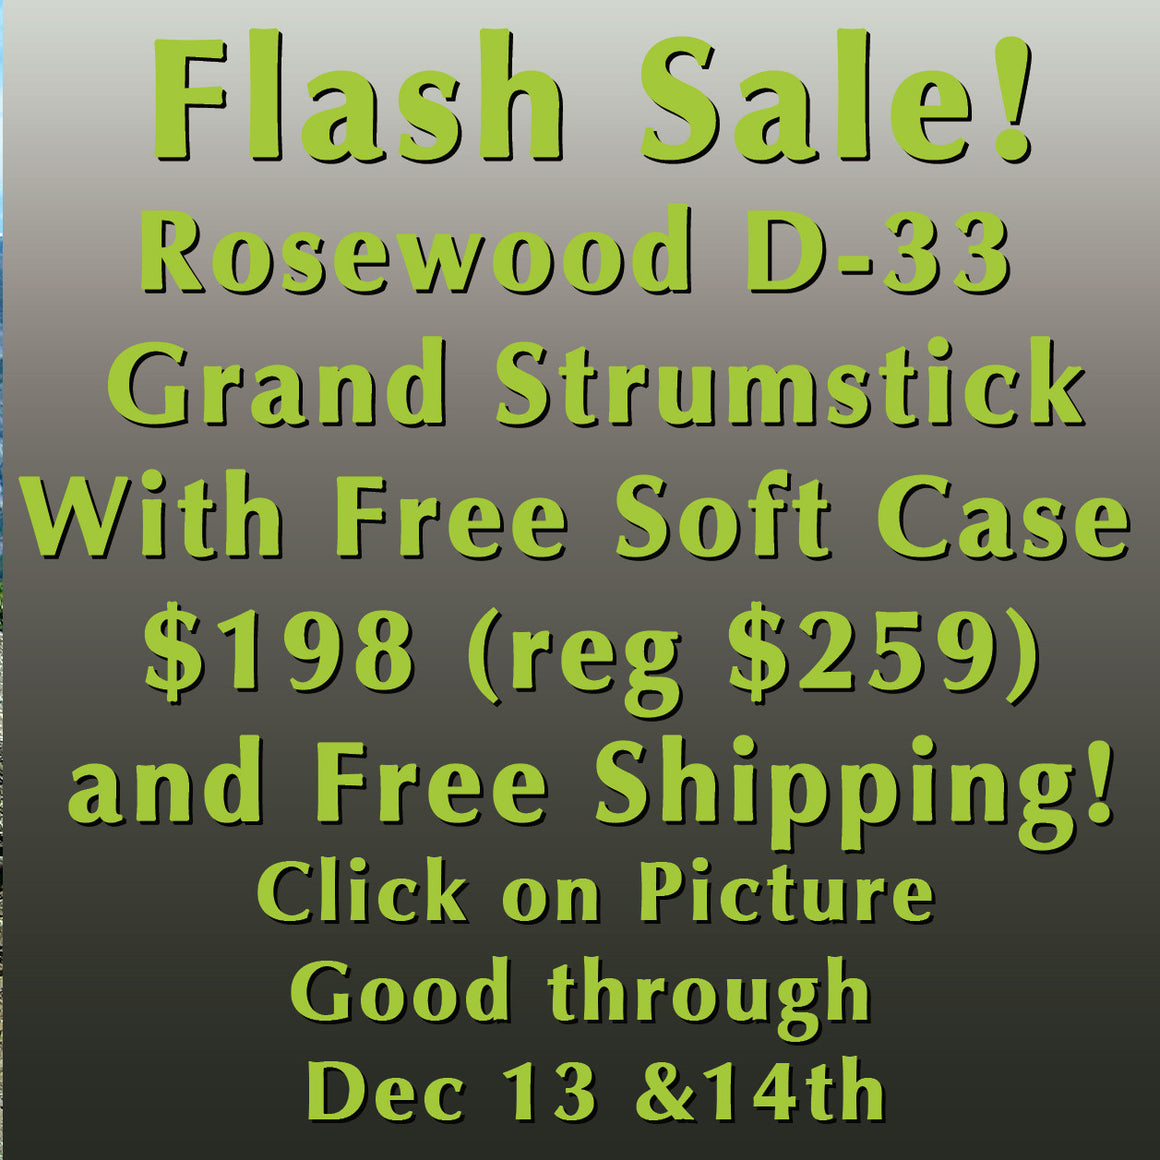 Rosewood D-33 Flash Sale